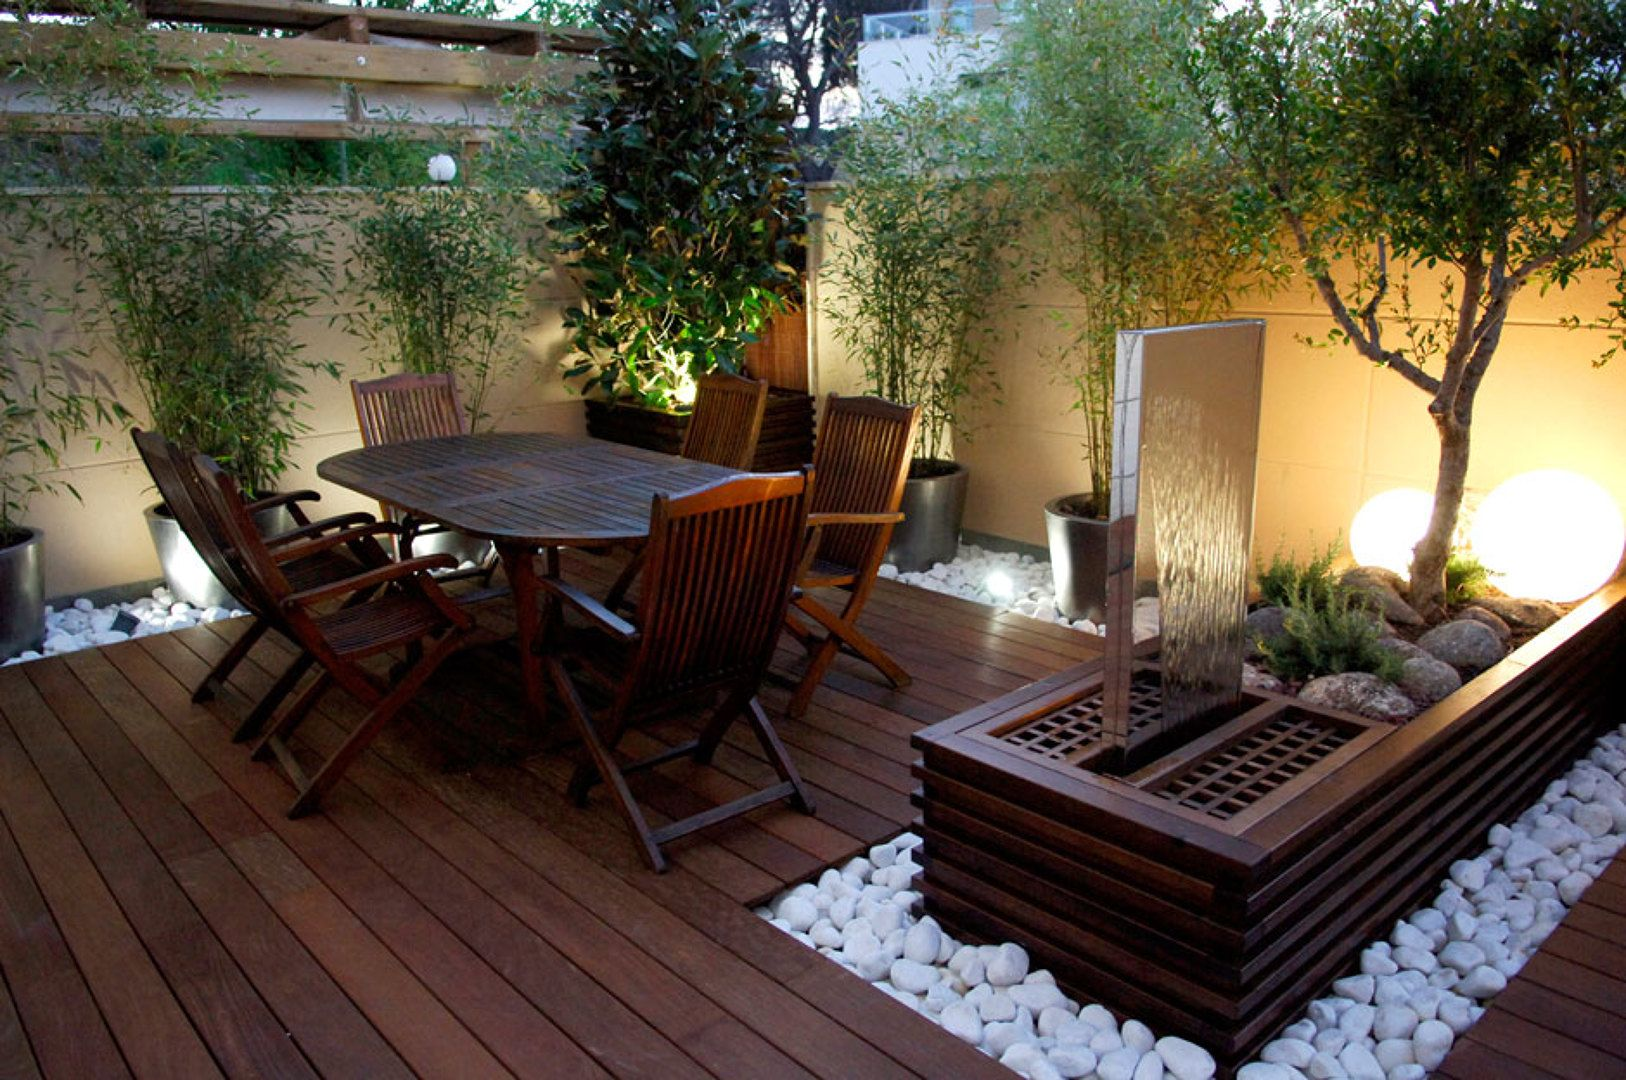 Iluminaci n terraza r stico industrial pinterest for Decoracion patios pequenos exteriores